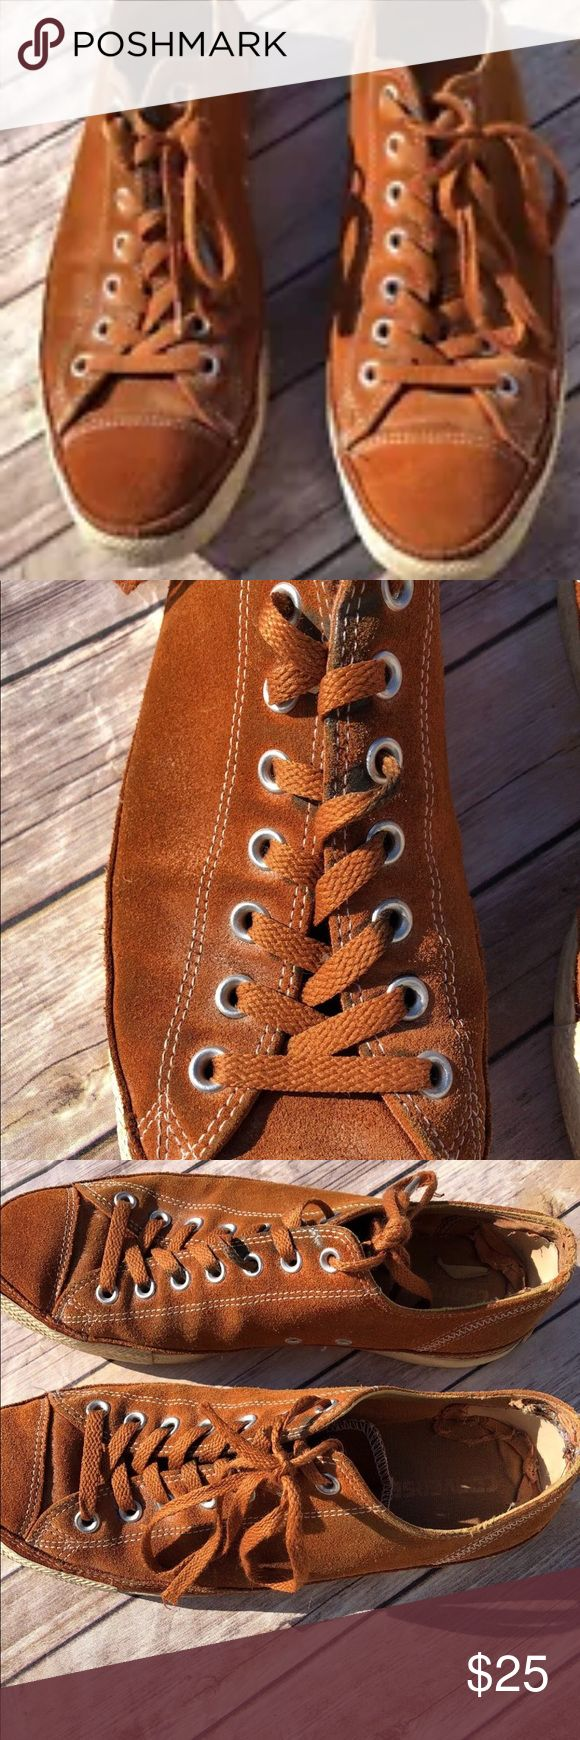 Converse All Star all Brown Leather 11/13 Converse All Star Brown Leather Men's 11/ womens 13. Definitely wear on these as shown in pic but a lot of life left in these bad boys!!! Converse Shoes